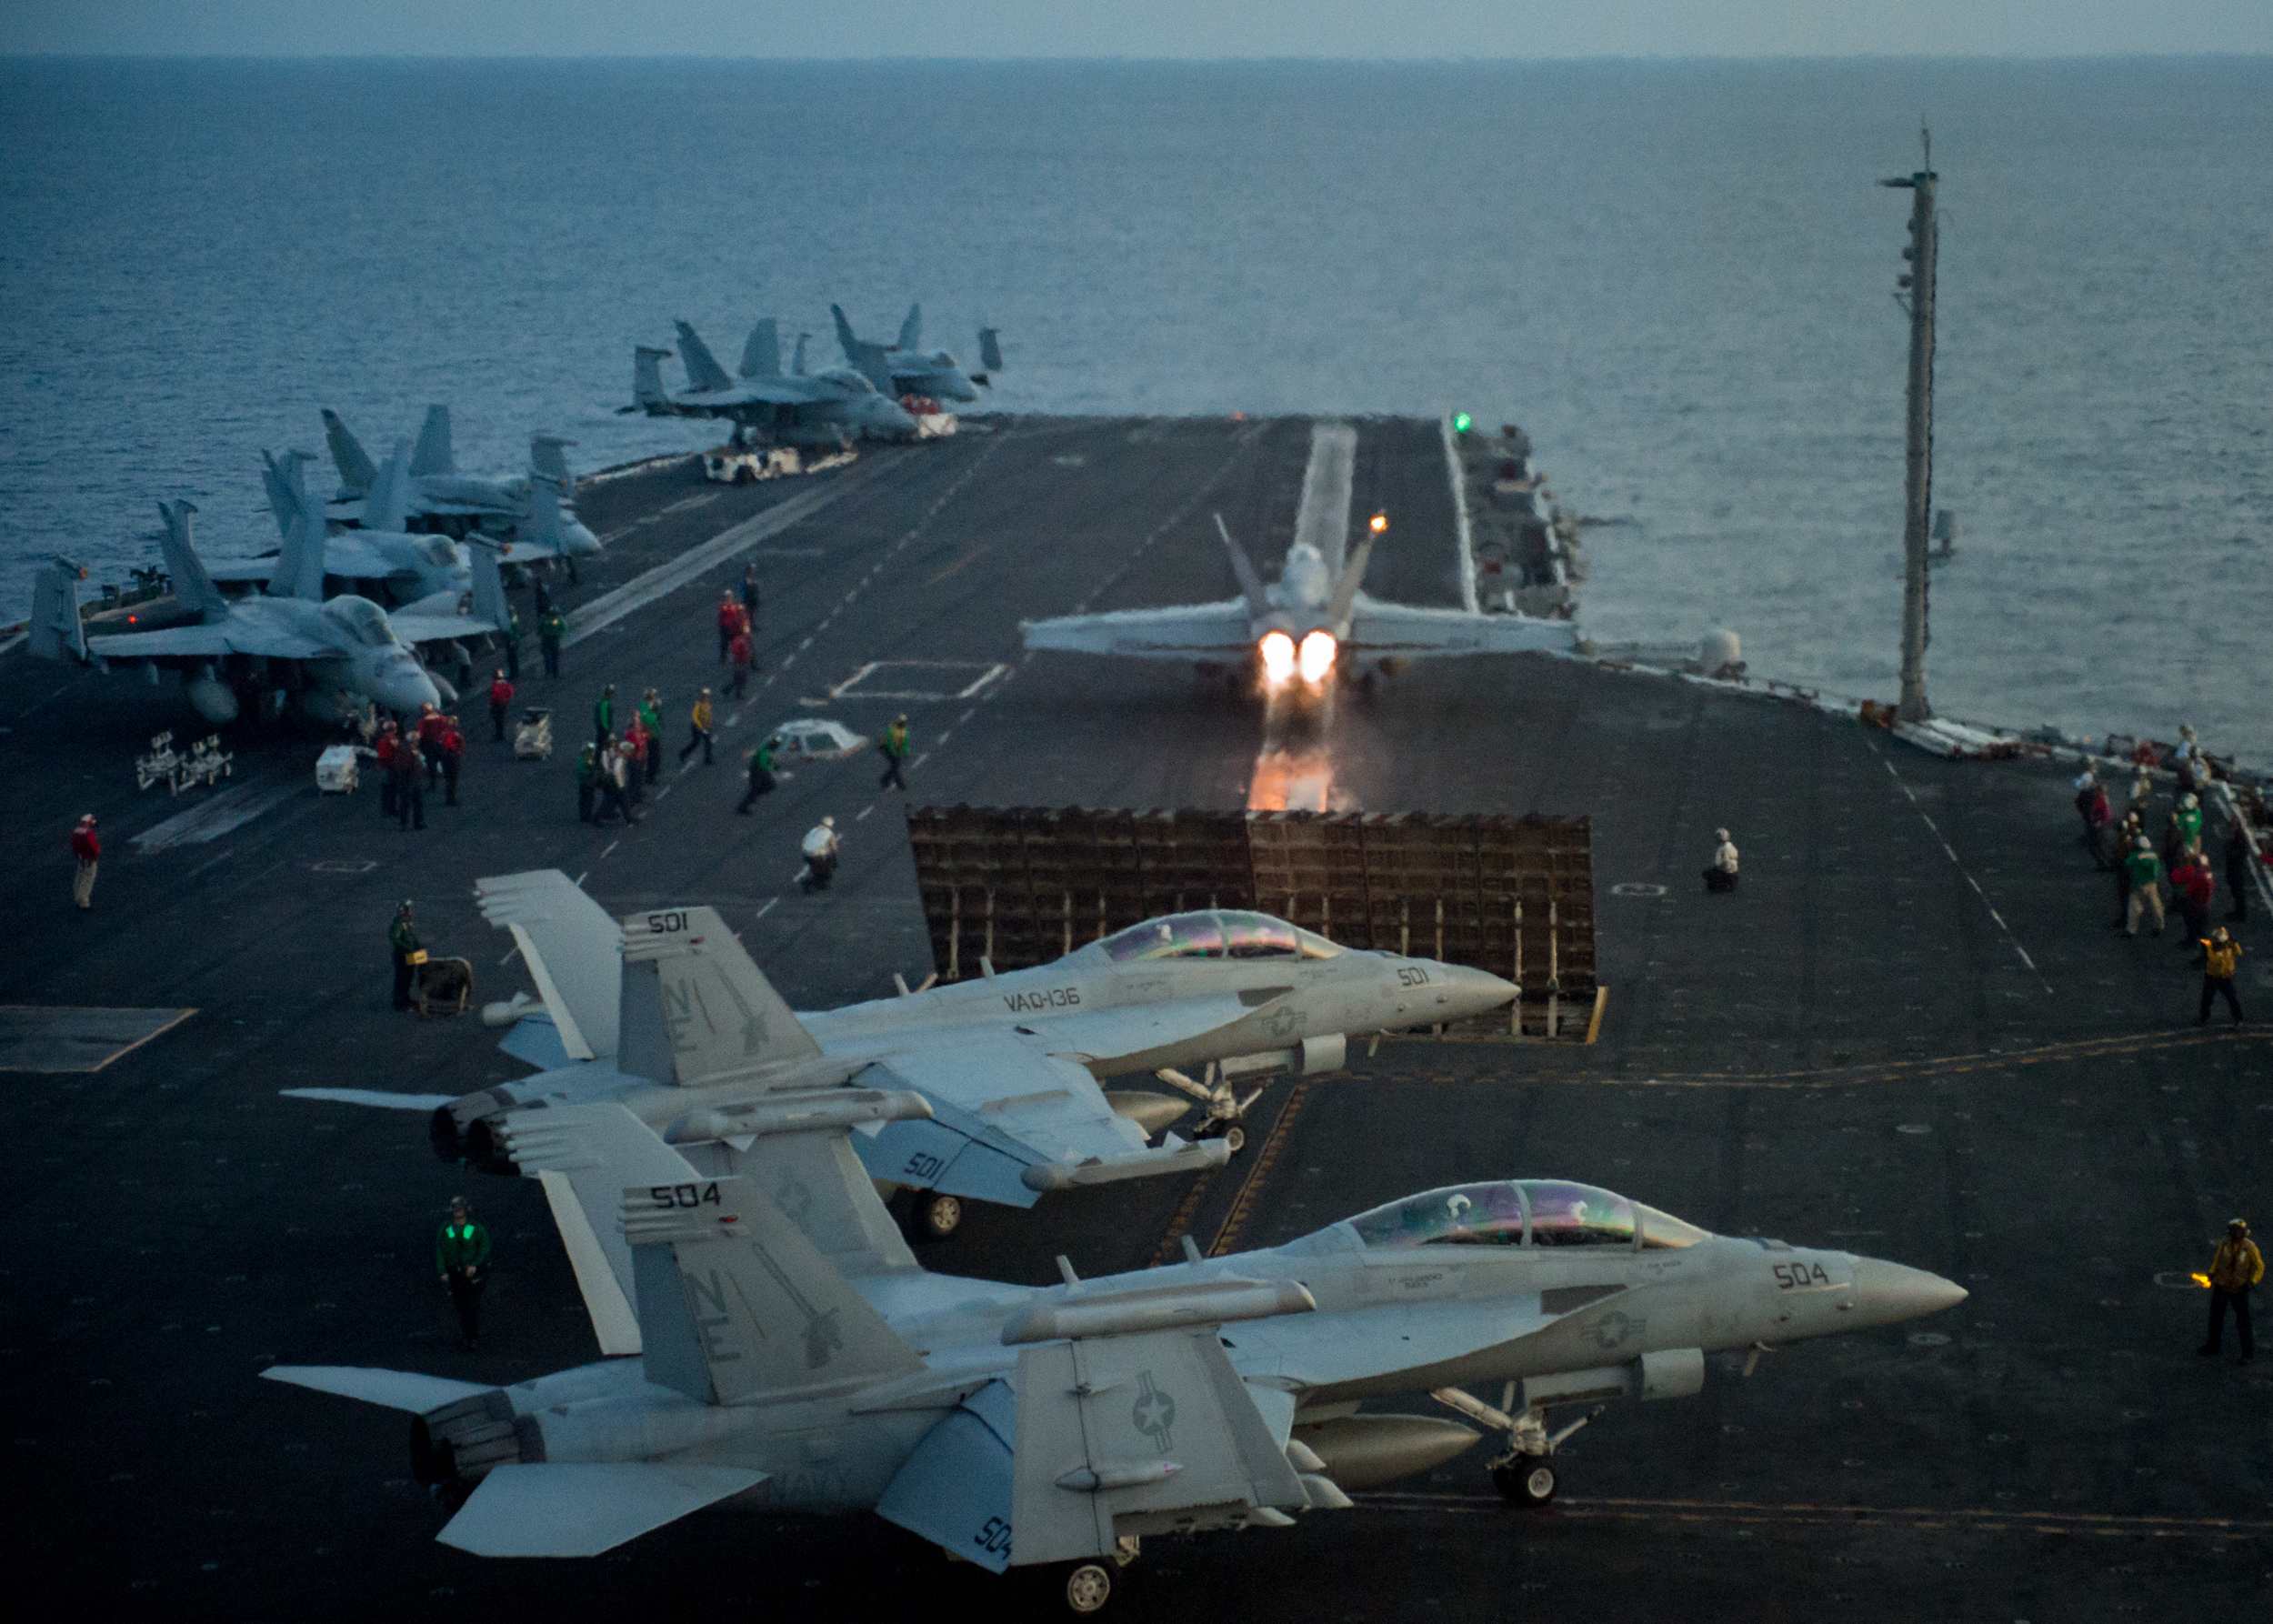 """An F/A-18E Super Hornet from the Strike Fighter Squadron (VFA) 137 """"Kestrels"""" takes off from the aircraft carrier USS Carl Vinson (CVN 70) flight deck in South China Sea, April 12, 2017."""